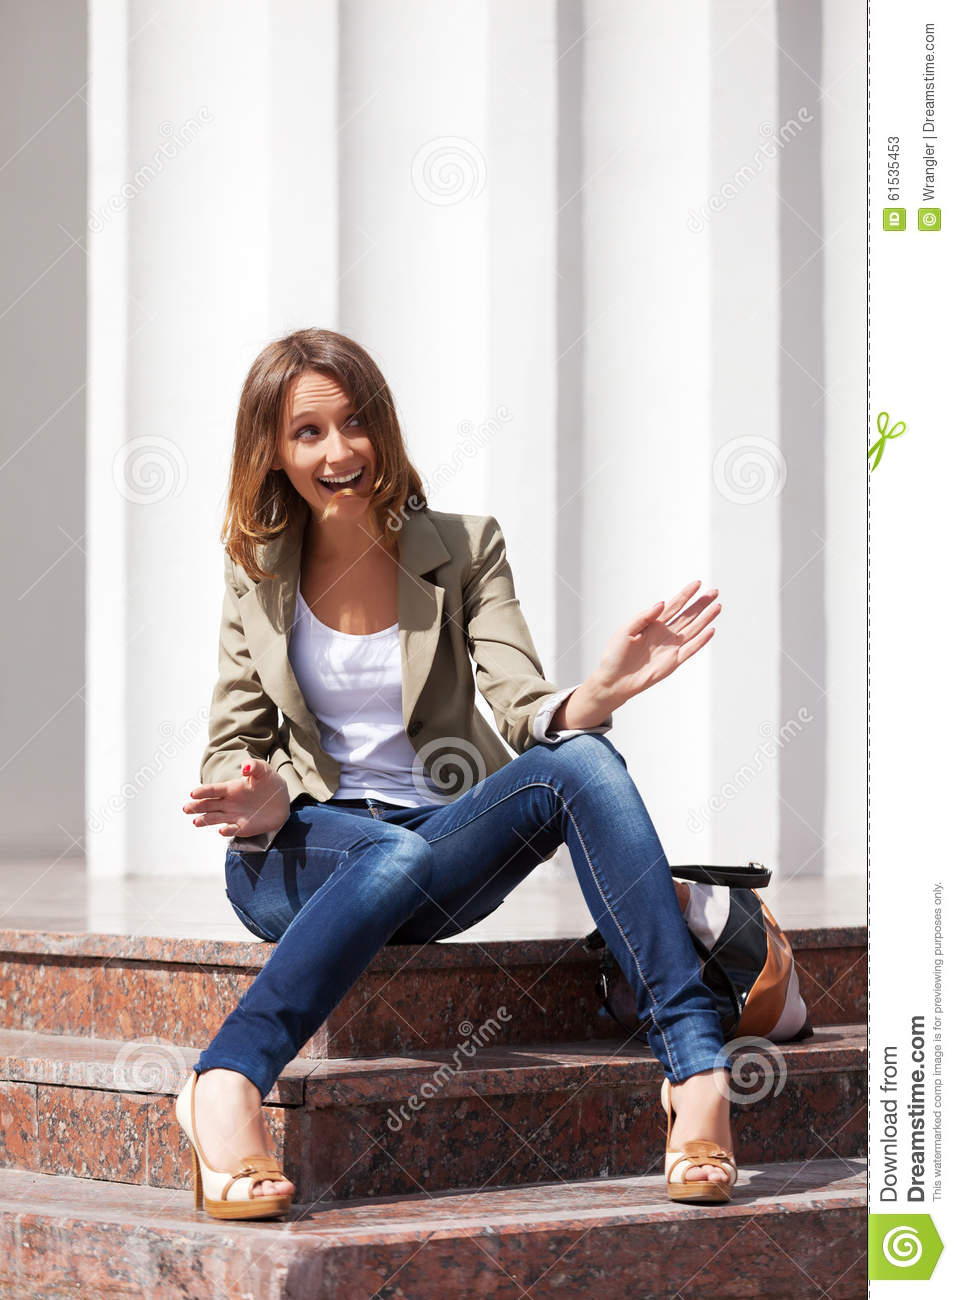 Young Fashion Woman With Shopping Bag Sitting On Mall Steps Royalty Free Stock Image